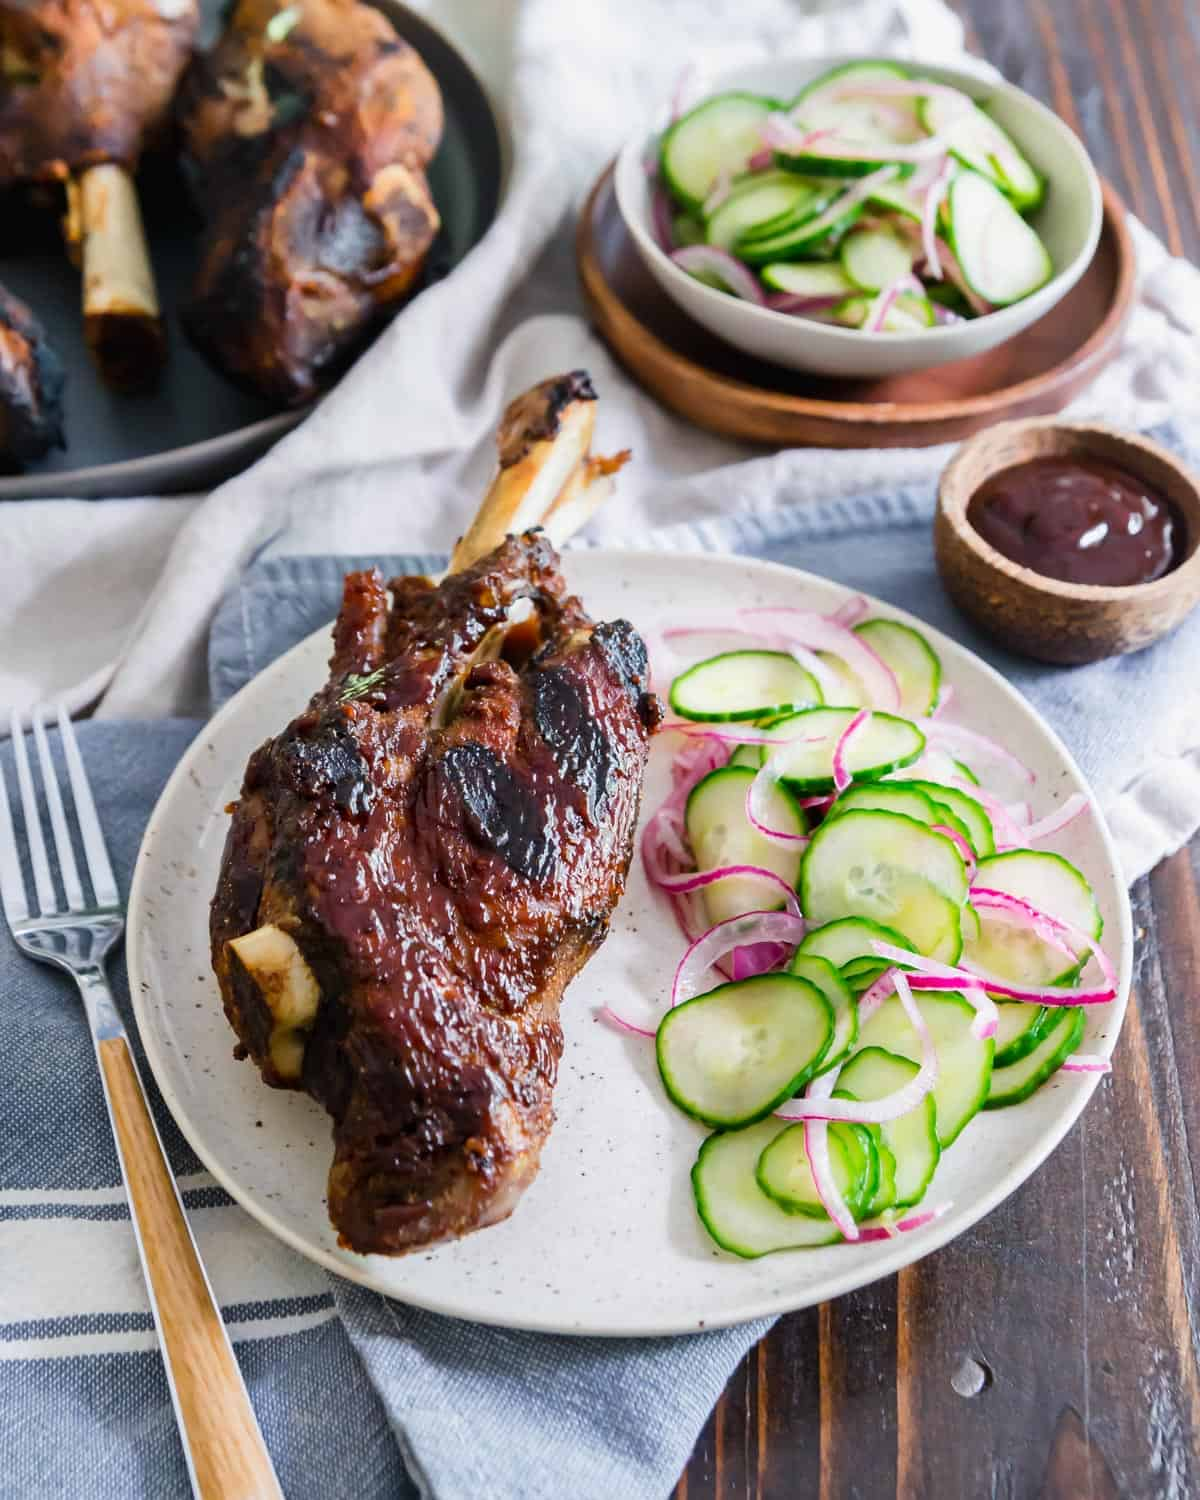 Seasoned perfectly and full of delicious BBQ flavor, these lamb shanks make a great summer meal to share.